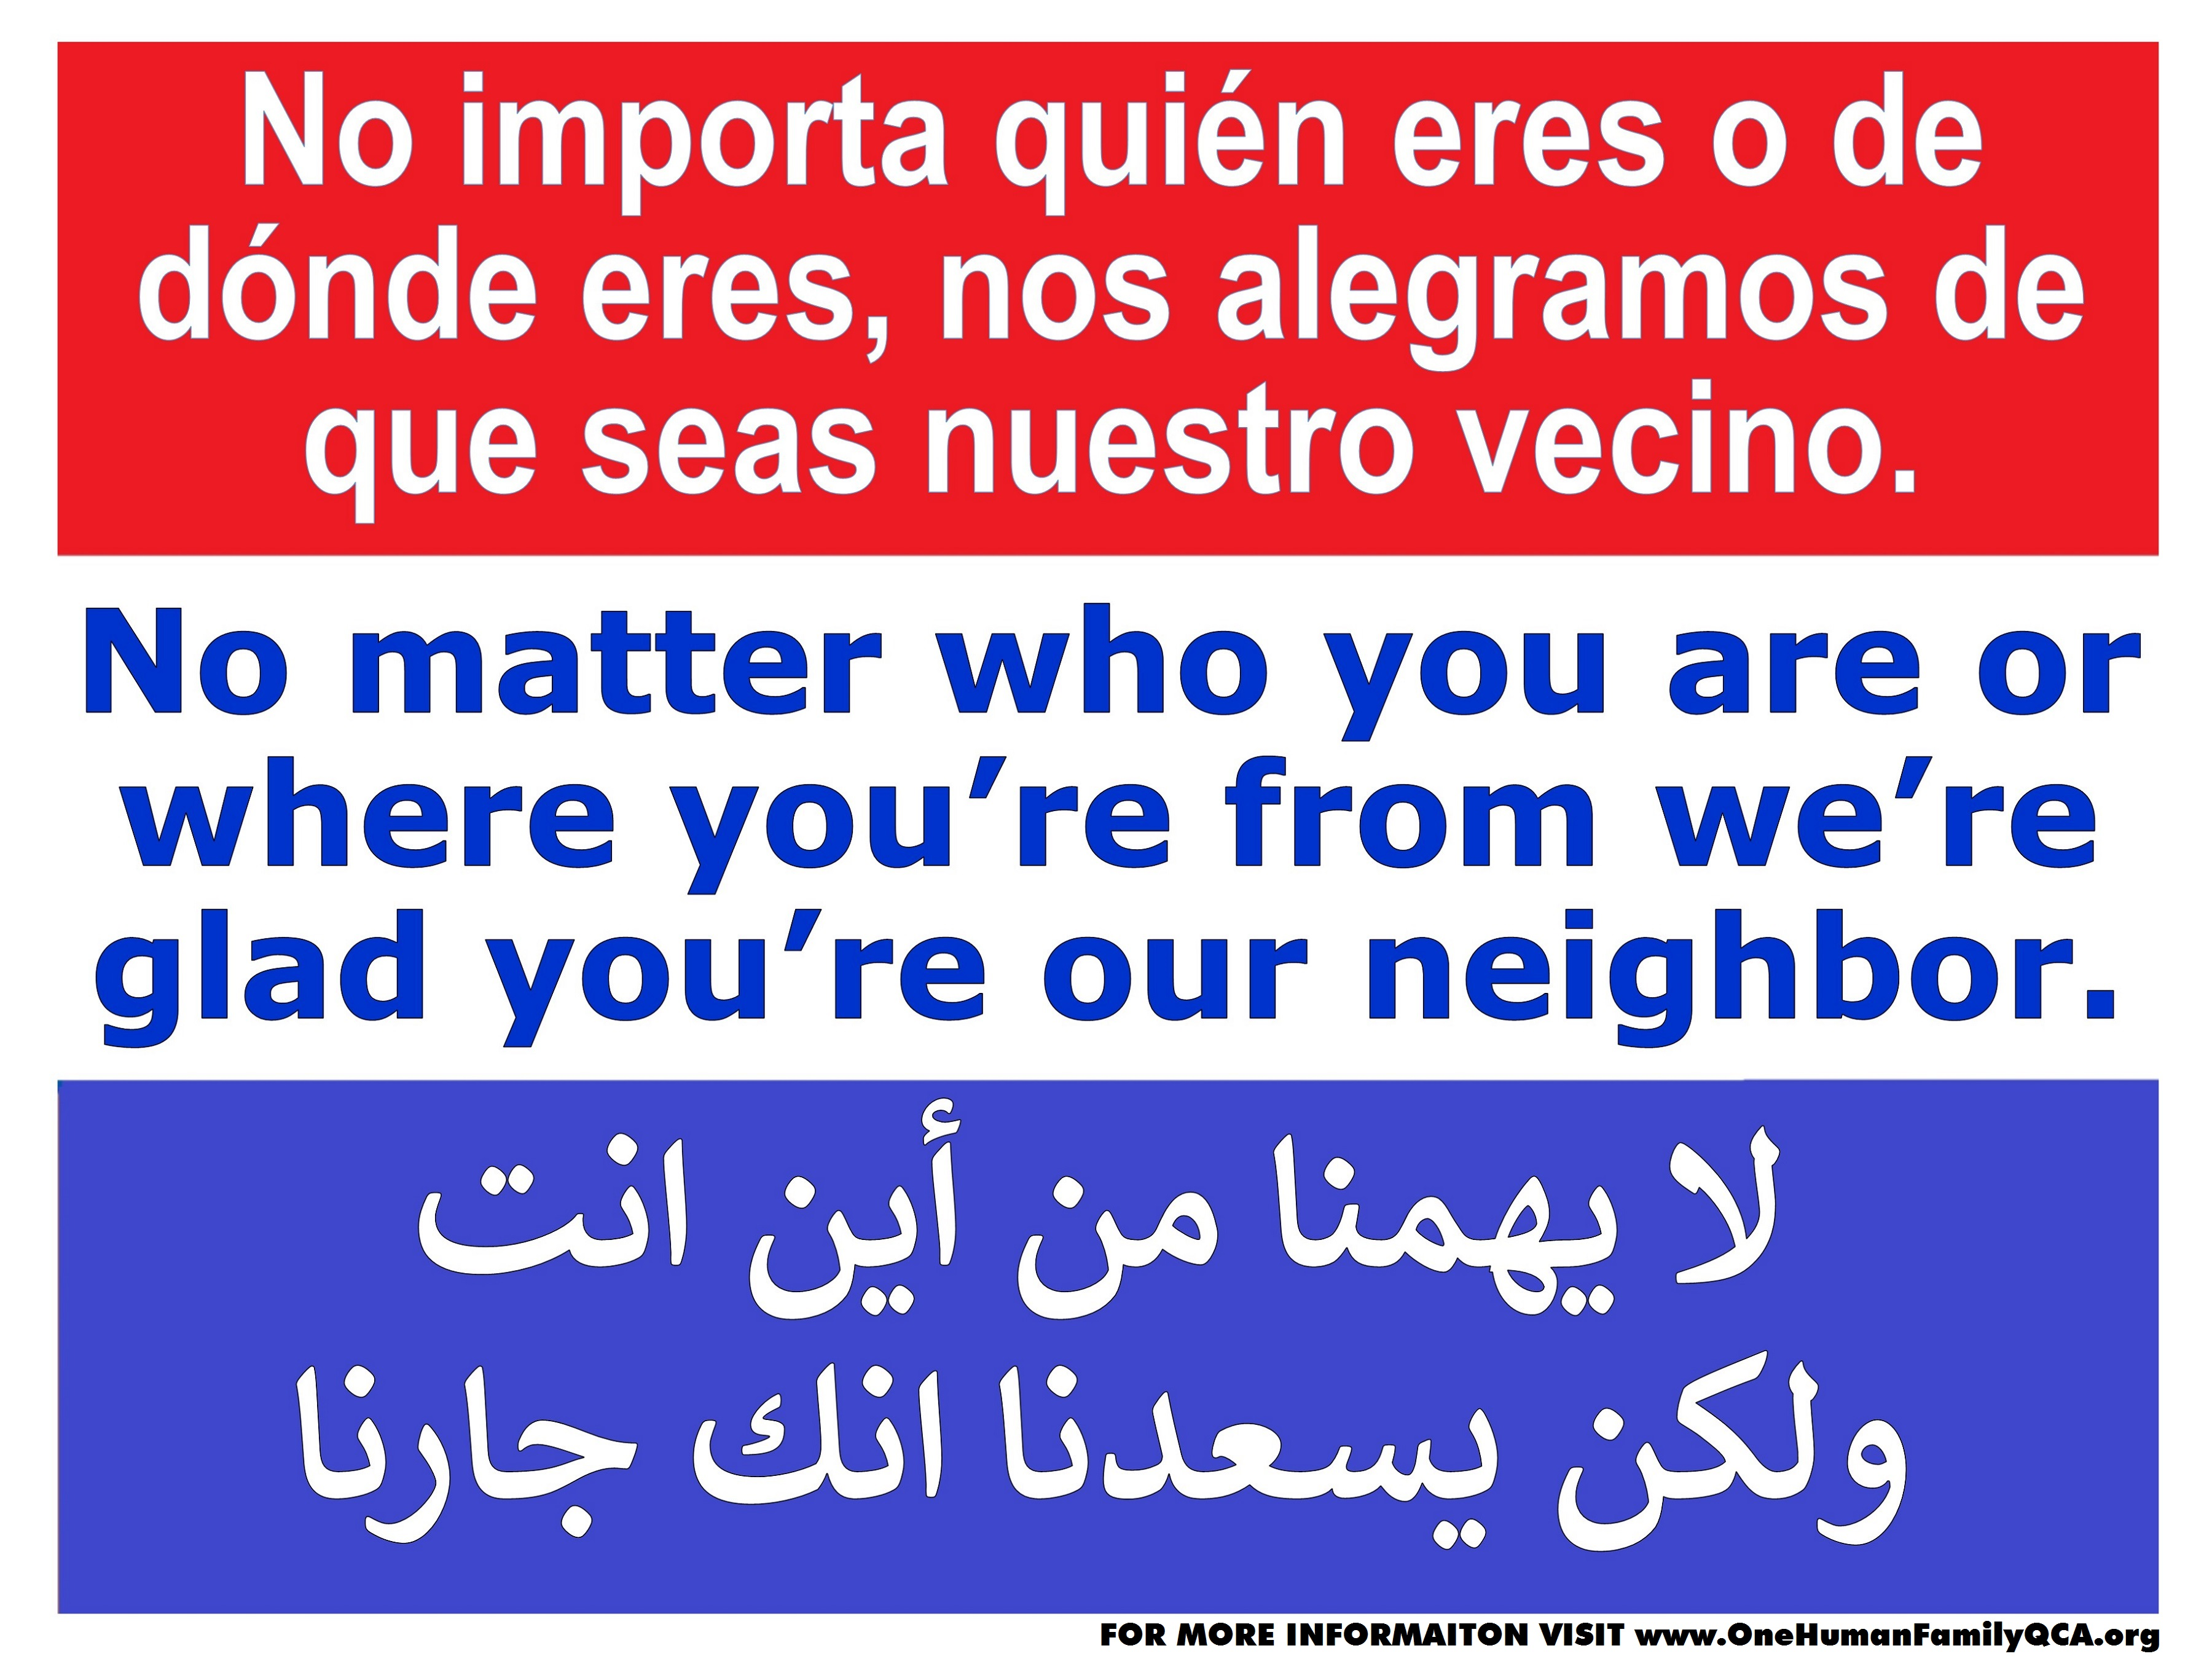 Lawn sign that welcomes neighbors in Spanish, English, and Arabic